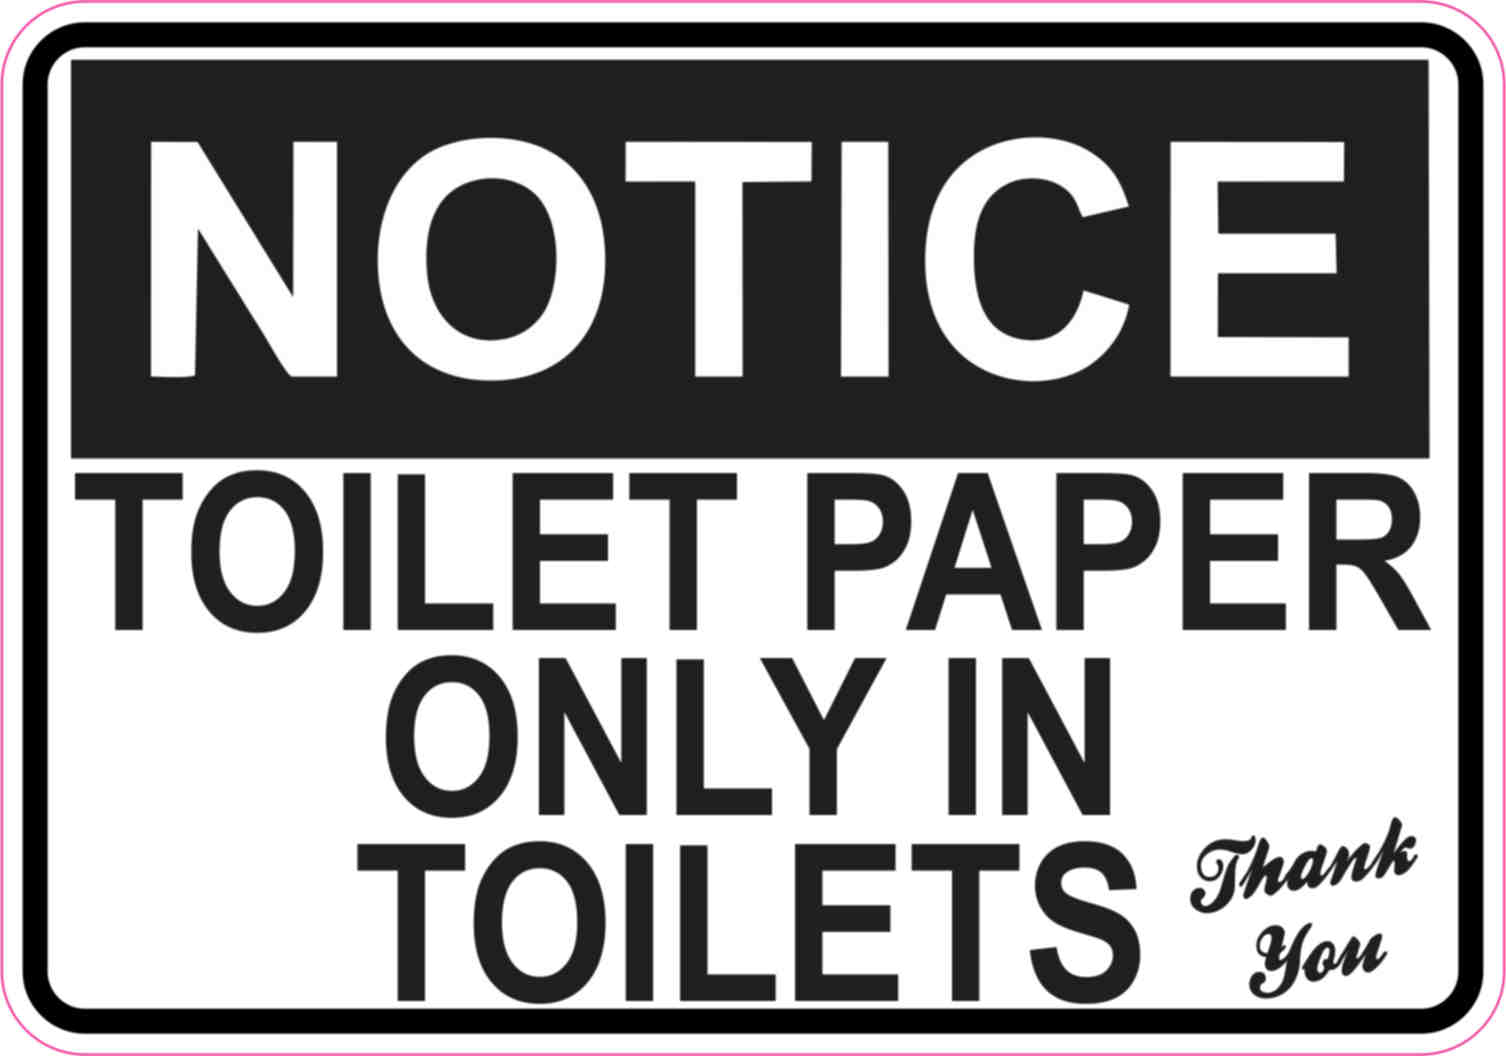 5in X 3 5in Toilet Paper Only Sticker Vinyl Restroom Wall